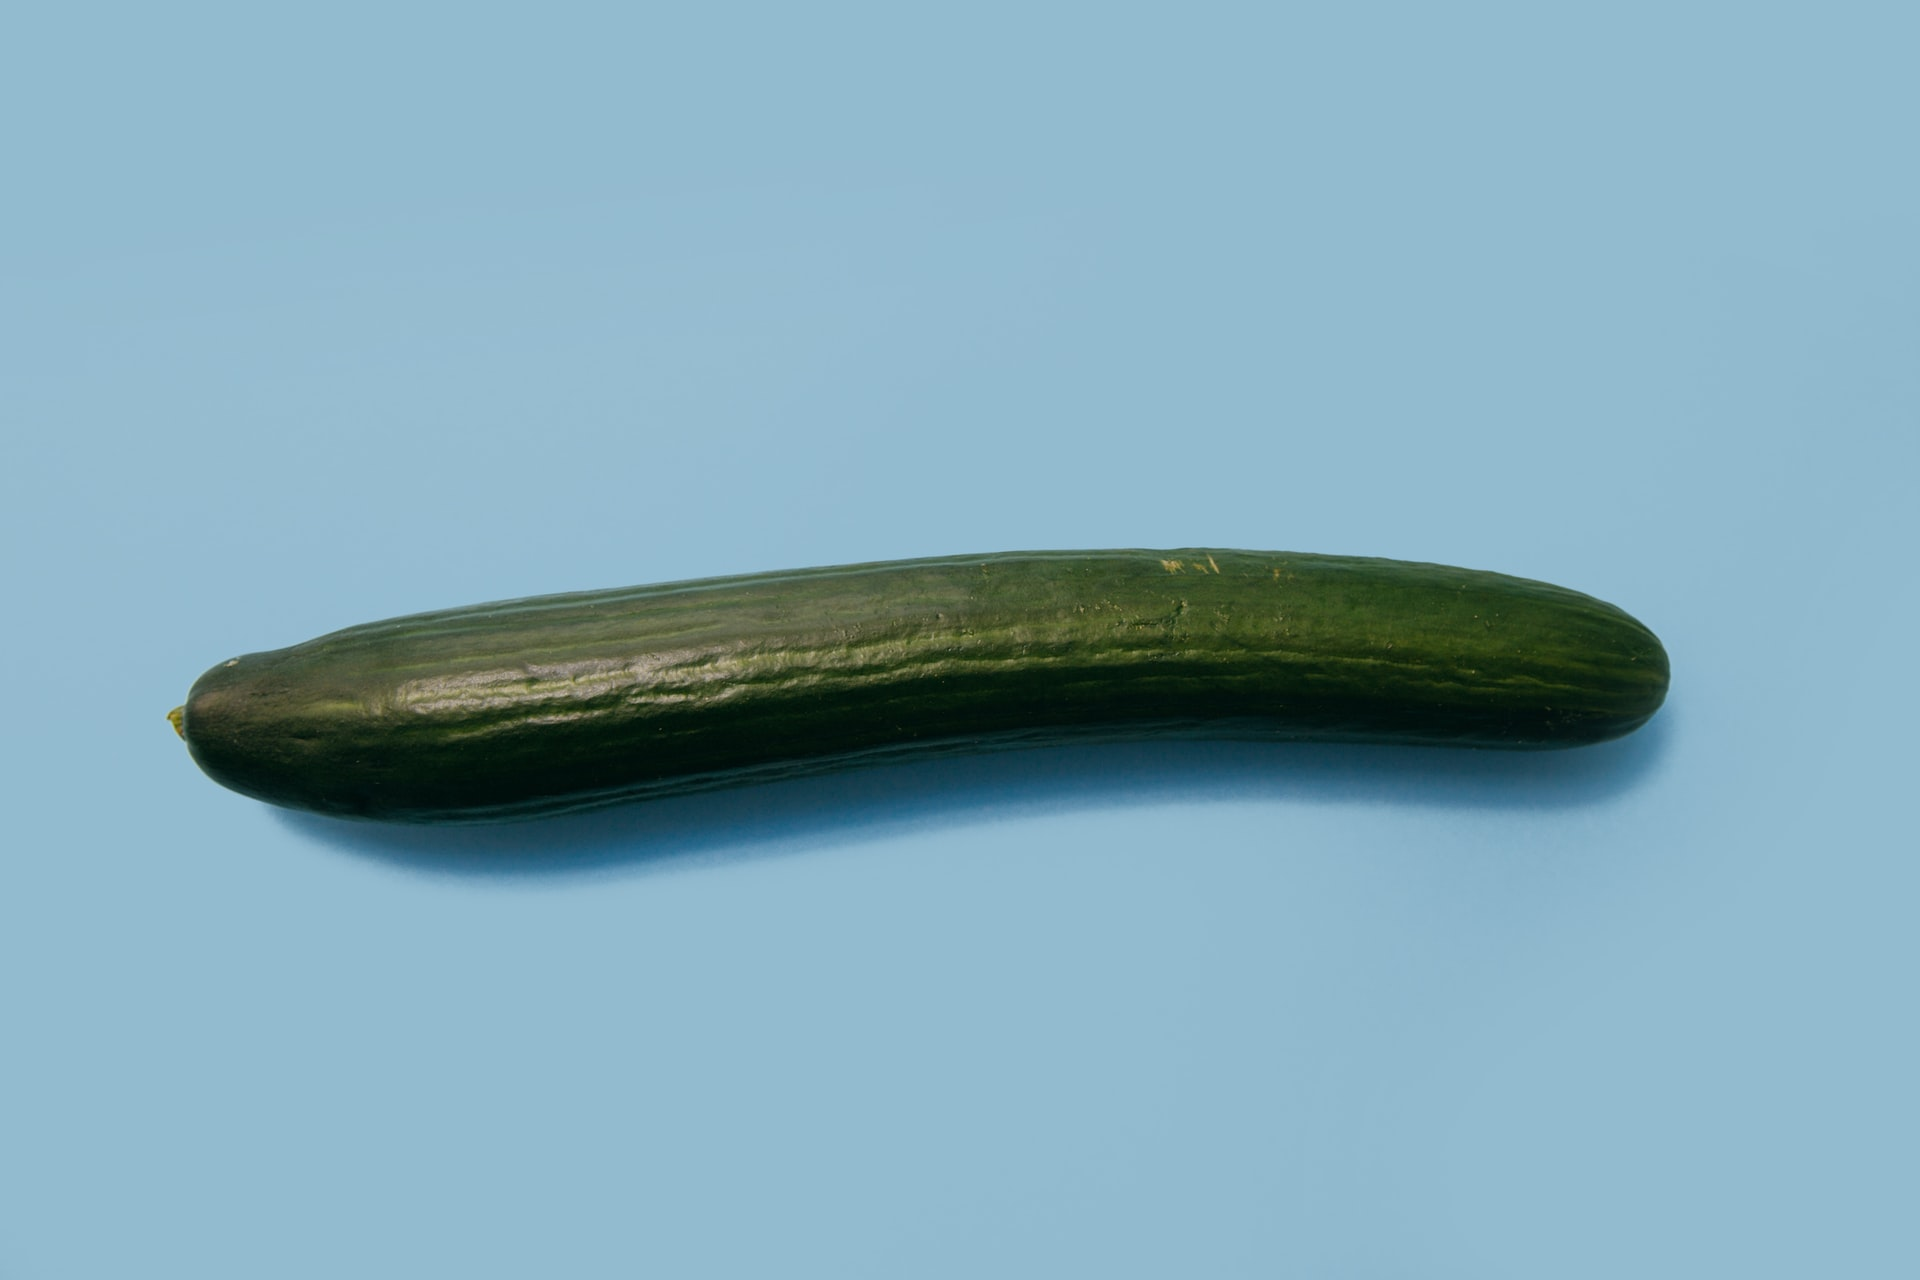 A picture of a cucumber on a blue background